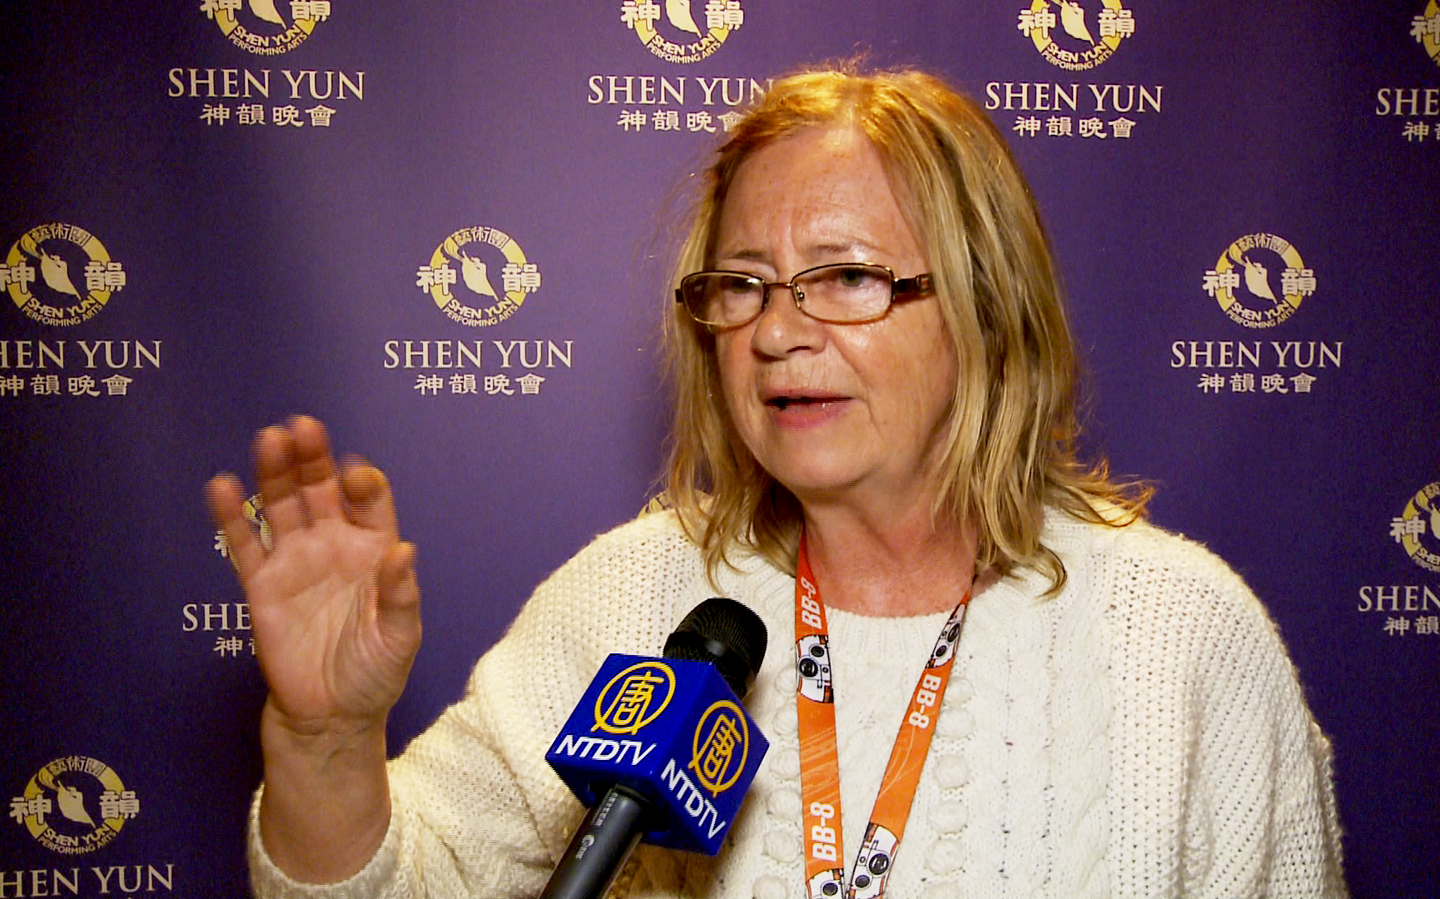 While Watching Shen Yun 'I felt at one with everything,' Says Artist